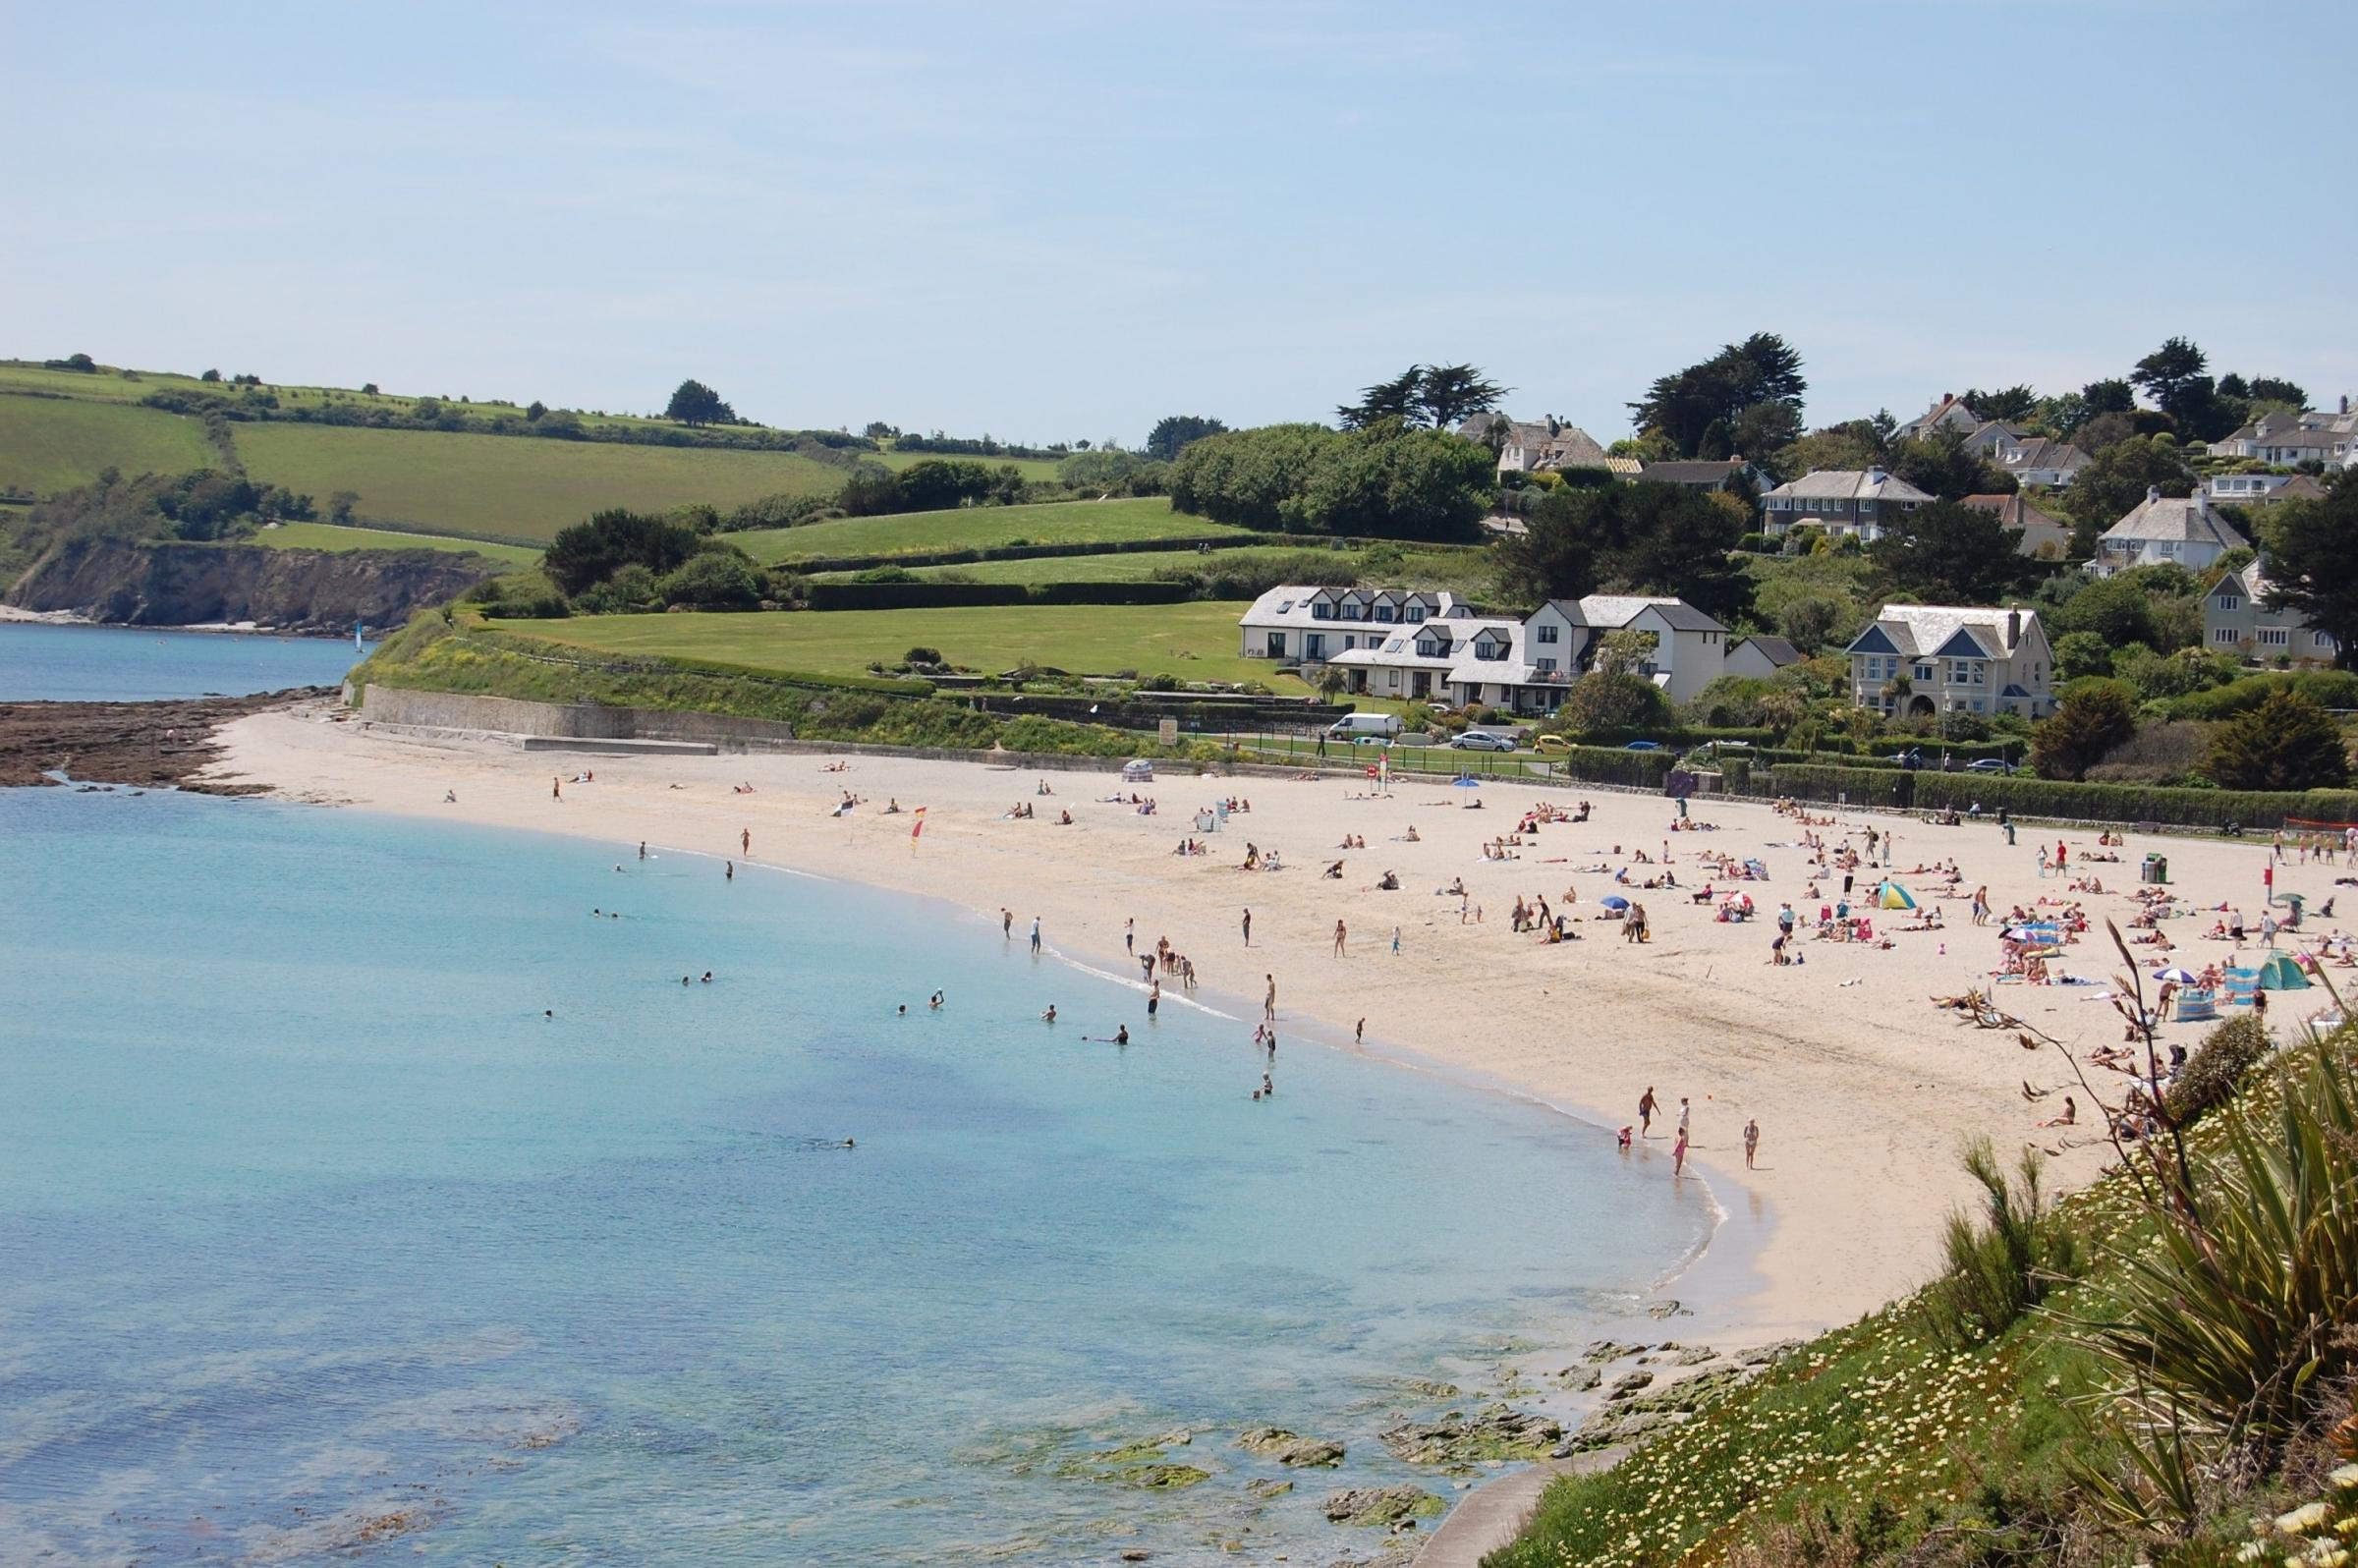 Gyllyngvase Beach, which has been rated excellent for its water quality